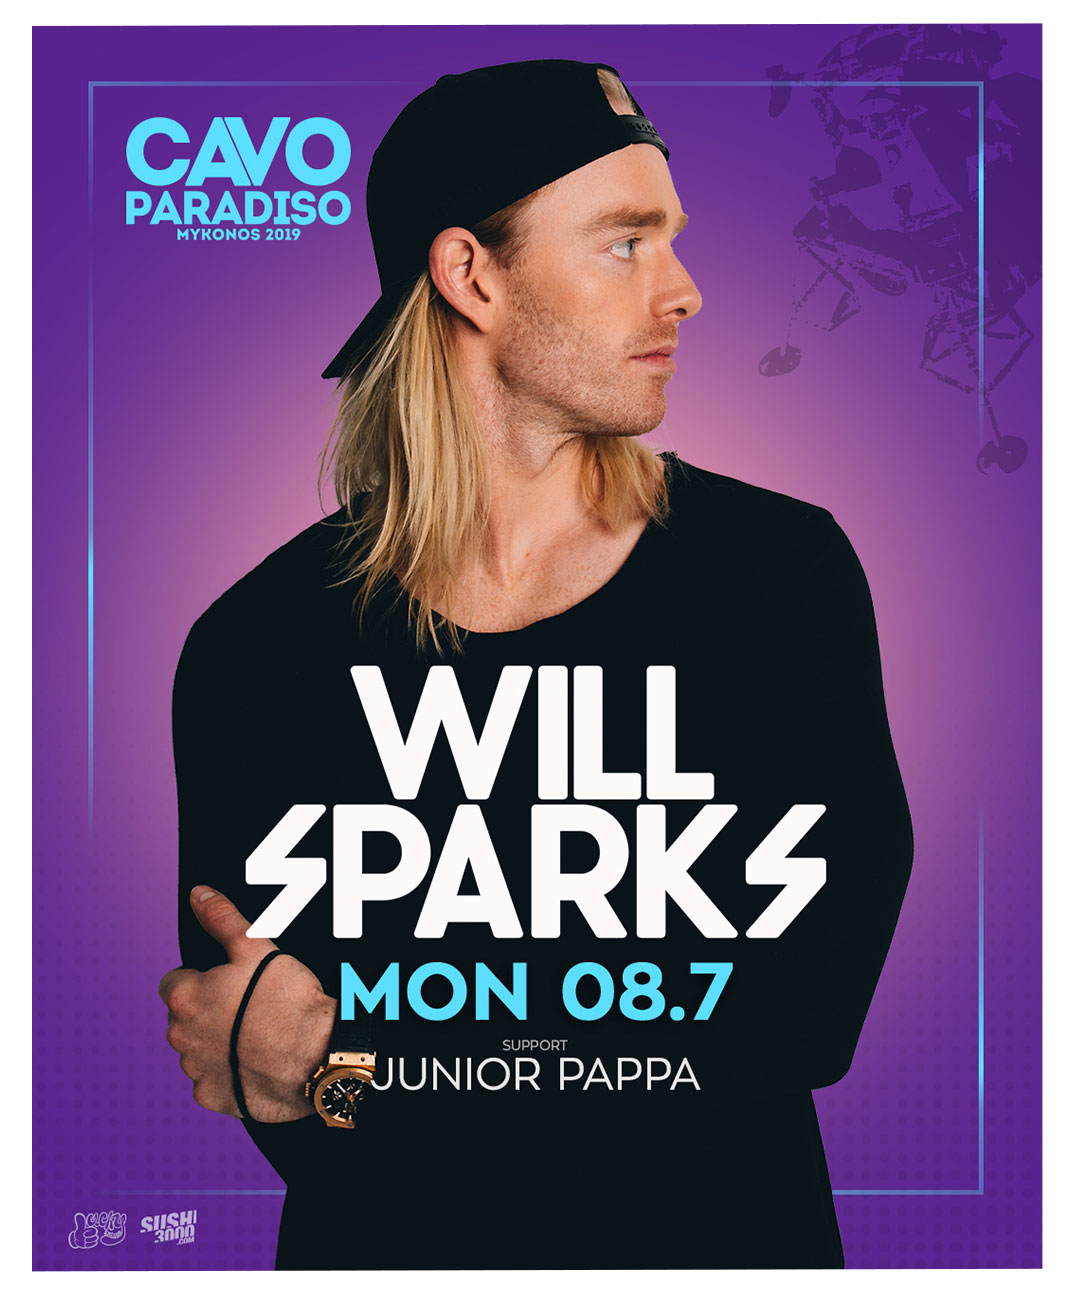 Will Sparks w/ support by Junior Pappa